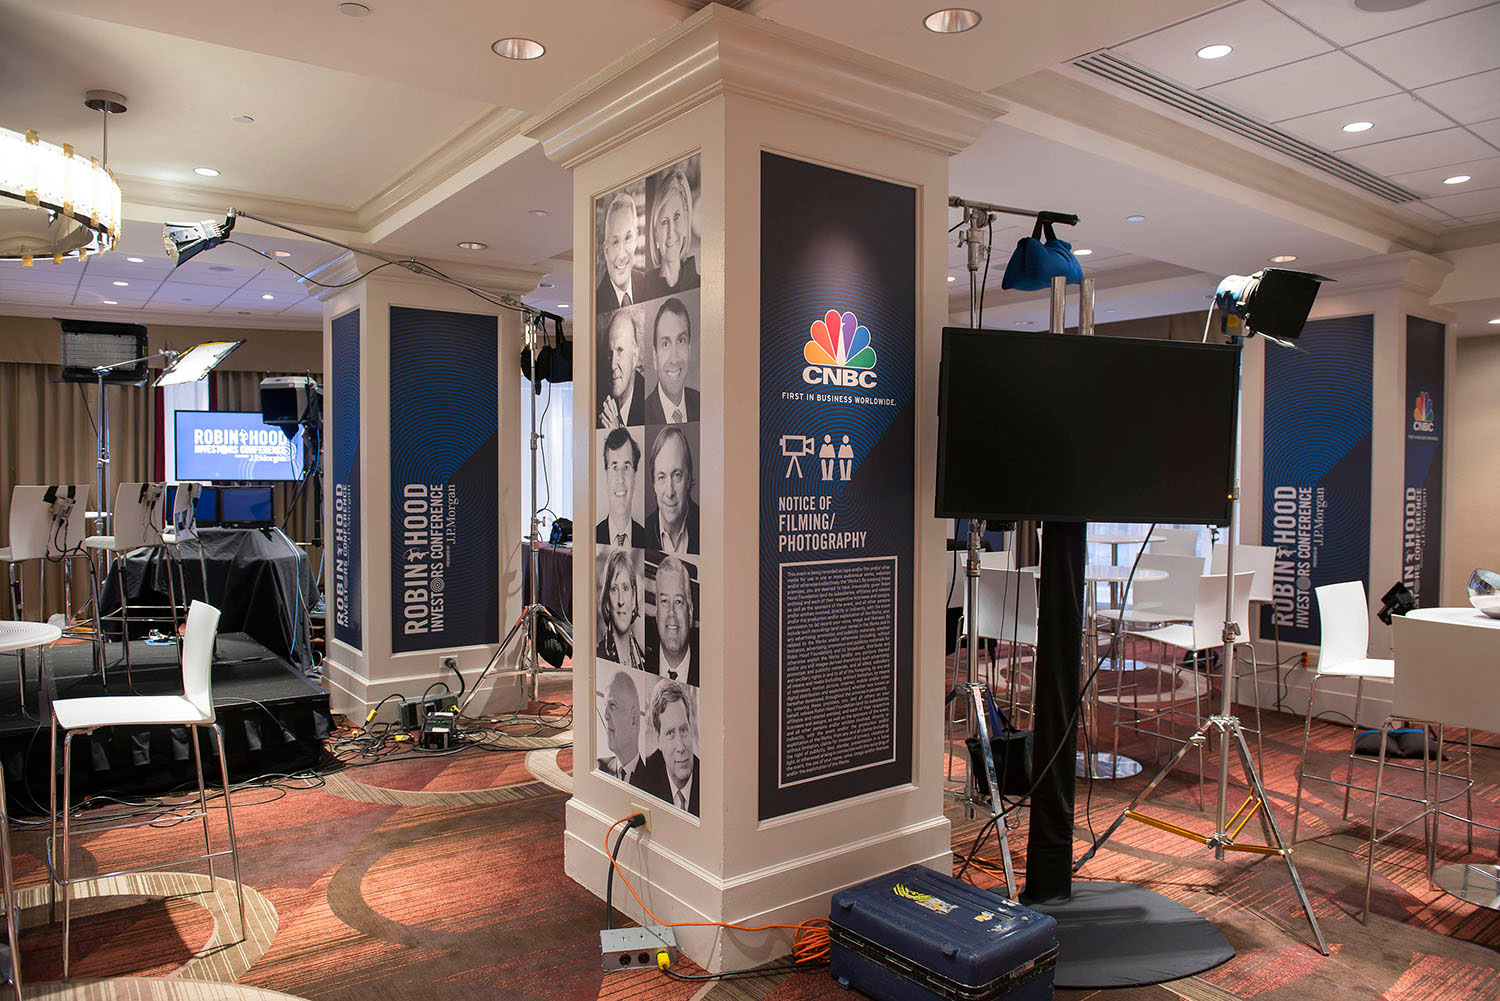 CNBC LIVE BROADCAST ROOM